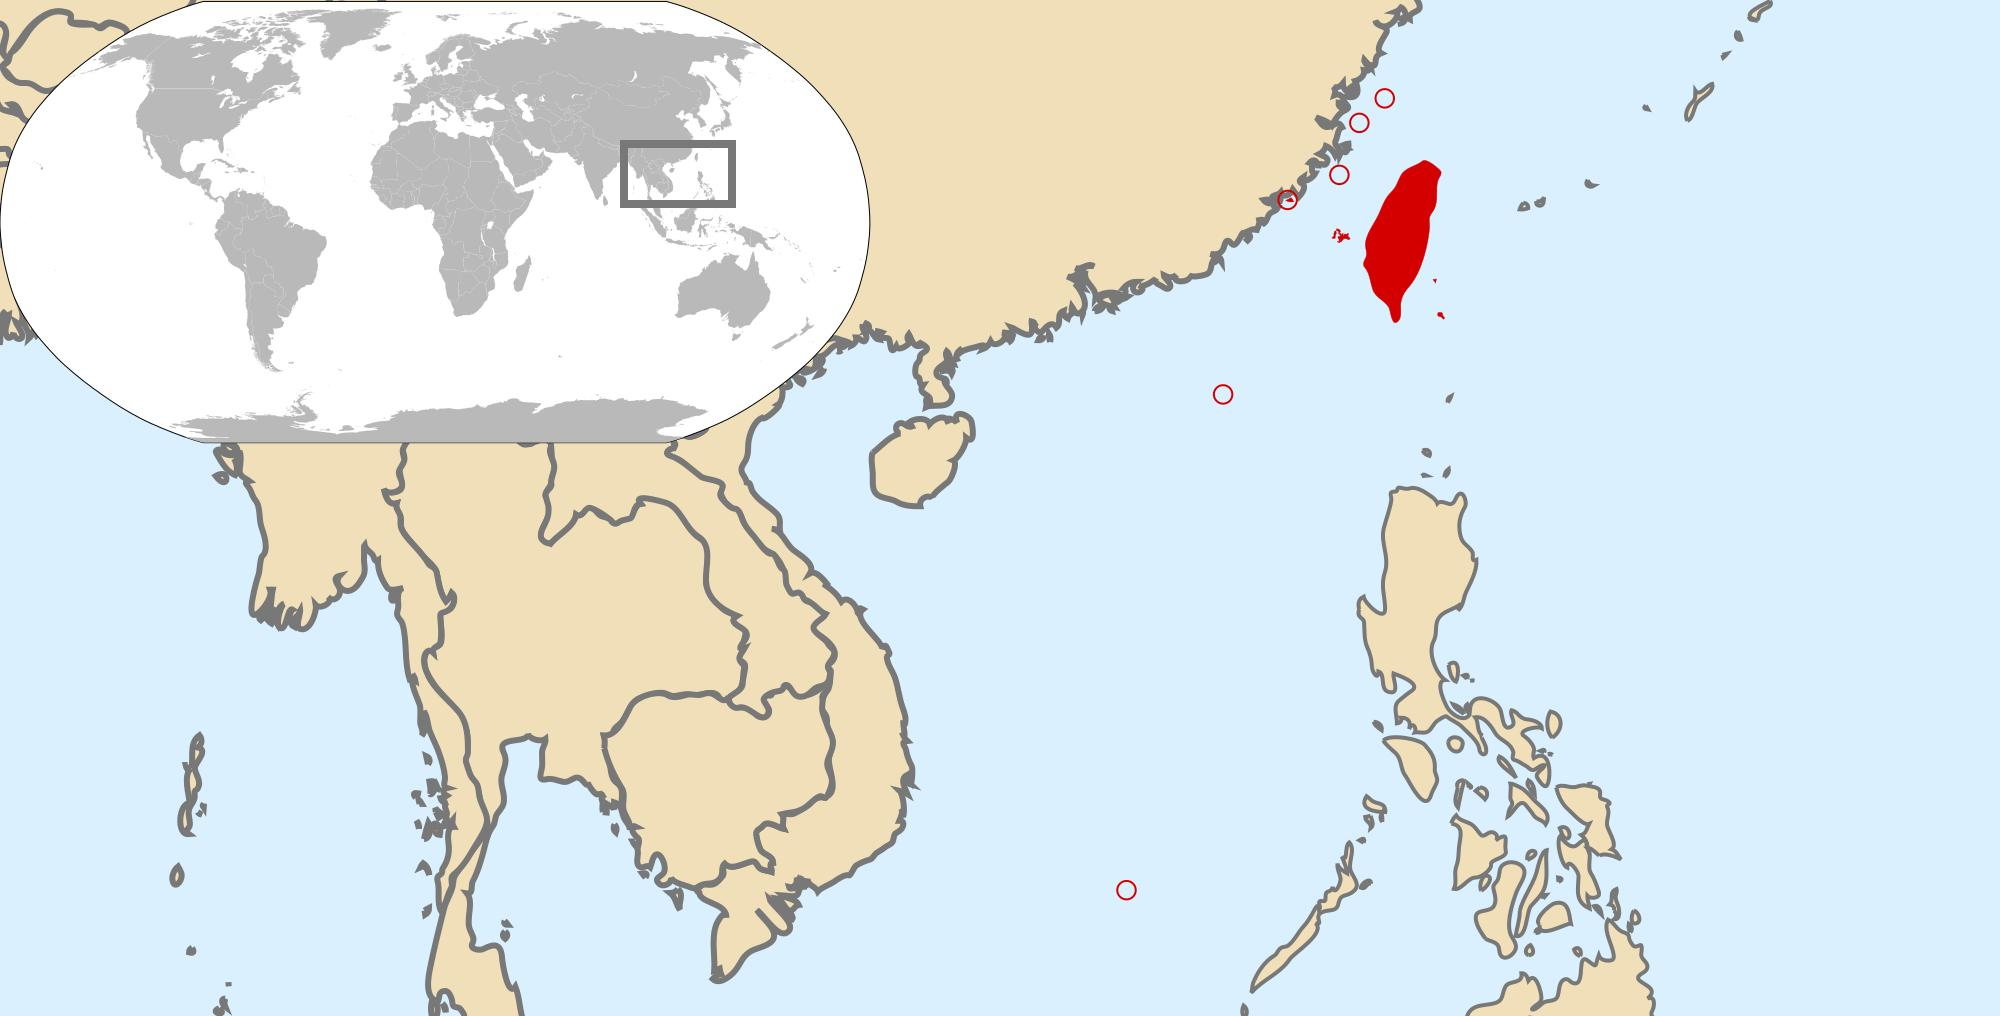 Taiwan location on world map world map showing taiwan eastern world map showing taiwan printprint systemupdatealtdownload gumiabroncs Choice Image